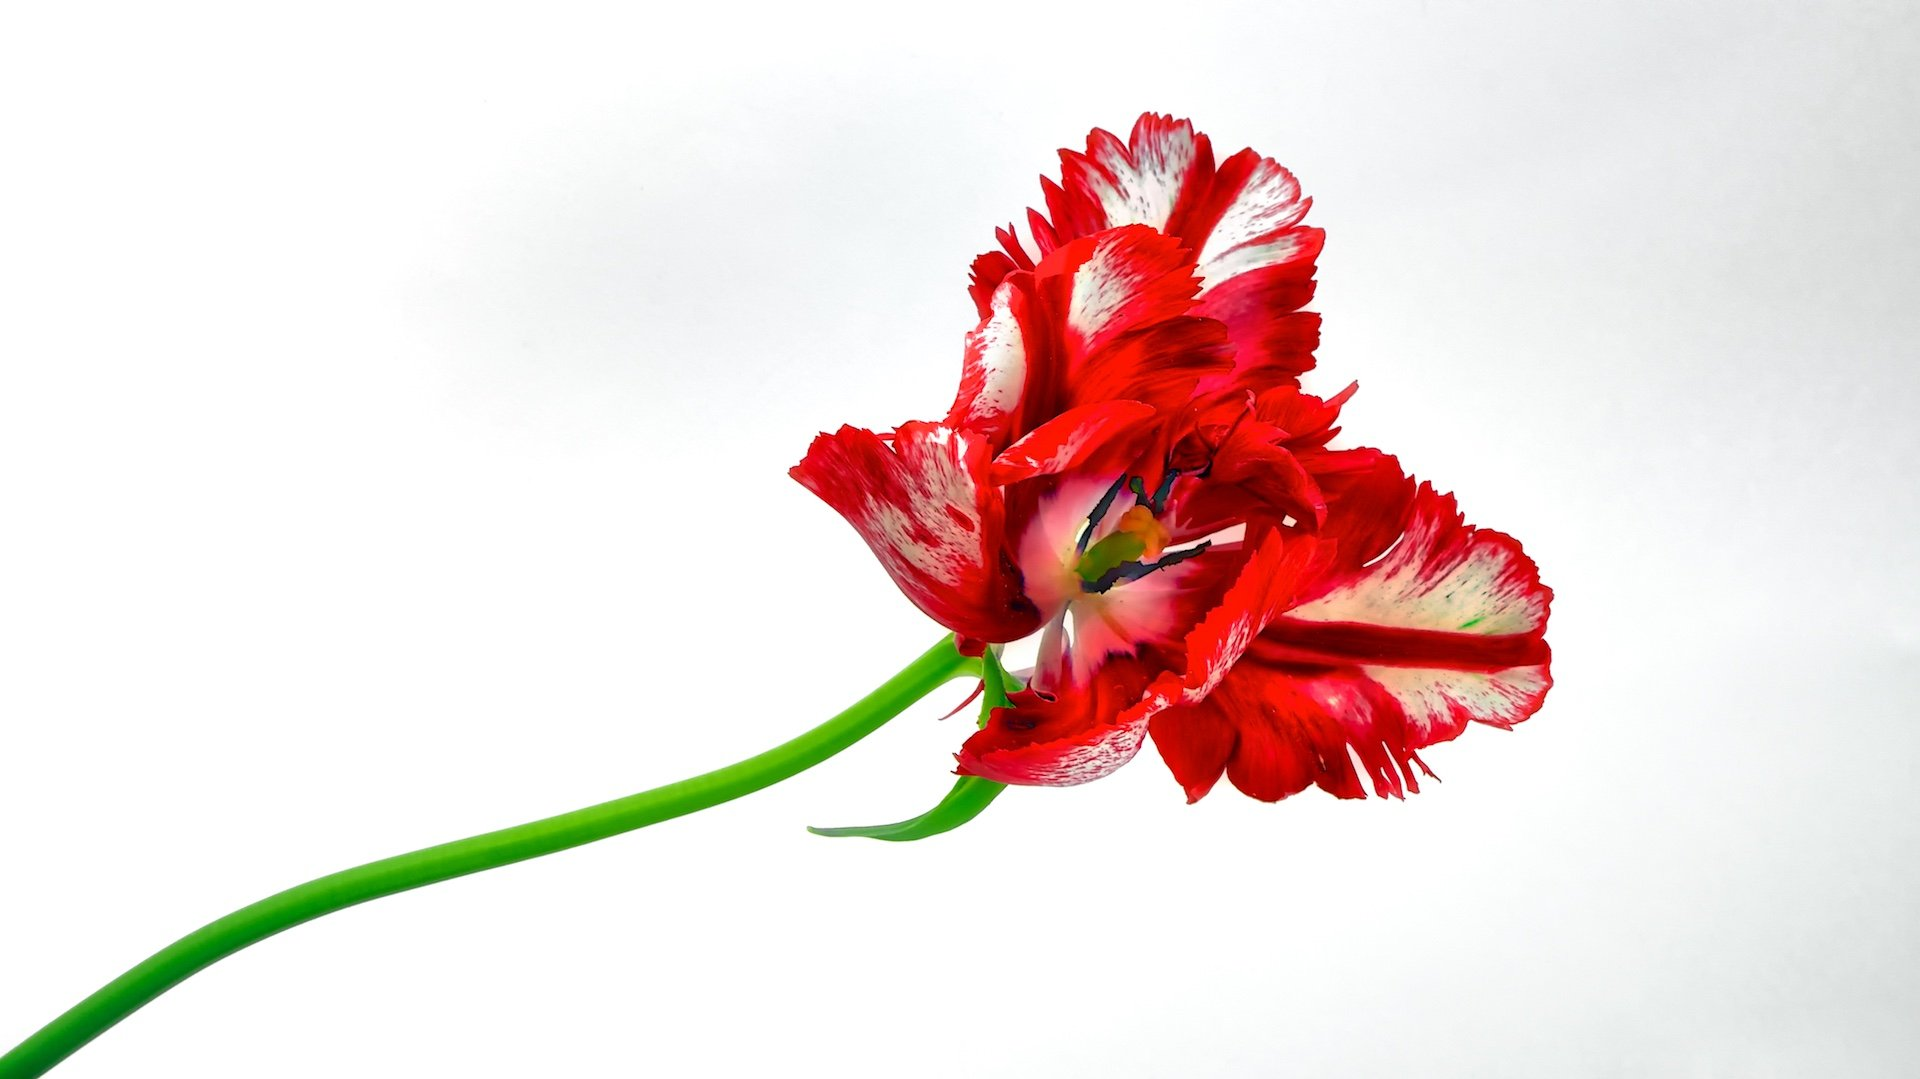 art, white background, bright, blossom, city life, close-up, white, light, delicate, estonia, europe, flower, garden, macro, tulip, nature, outdoor, simplicity, spring, red, tallinn, urban, frangible, plant, colorful,, Эдуард Горобец